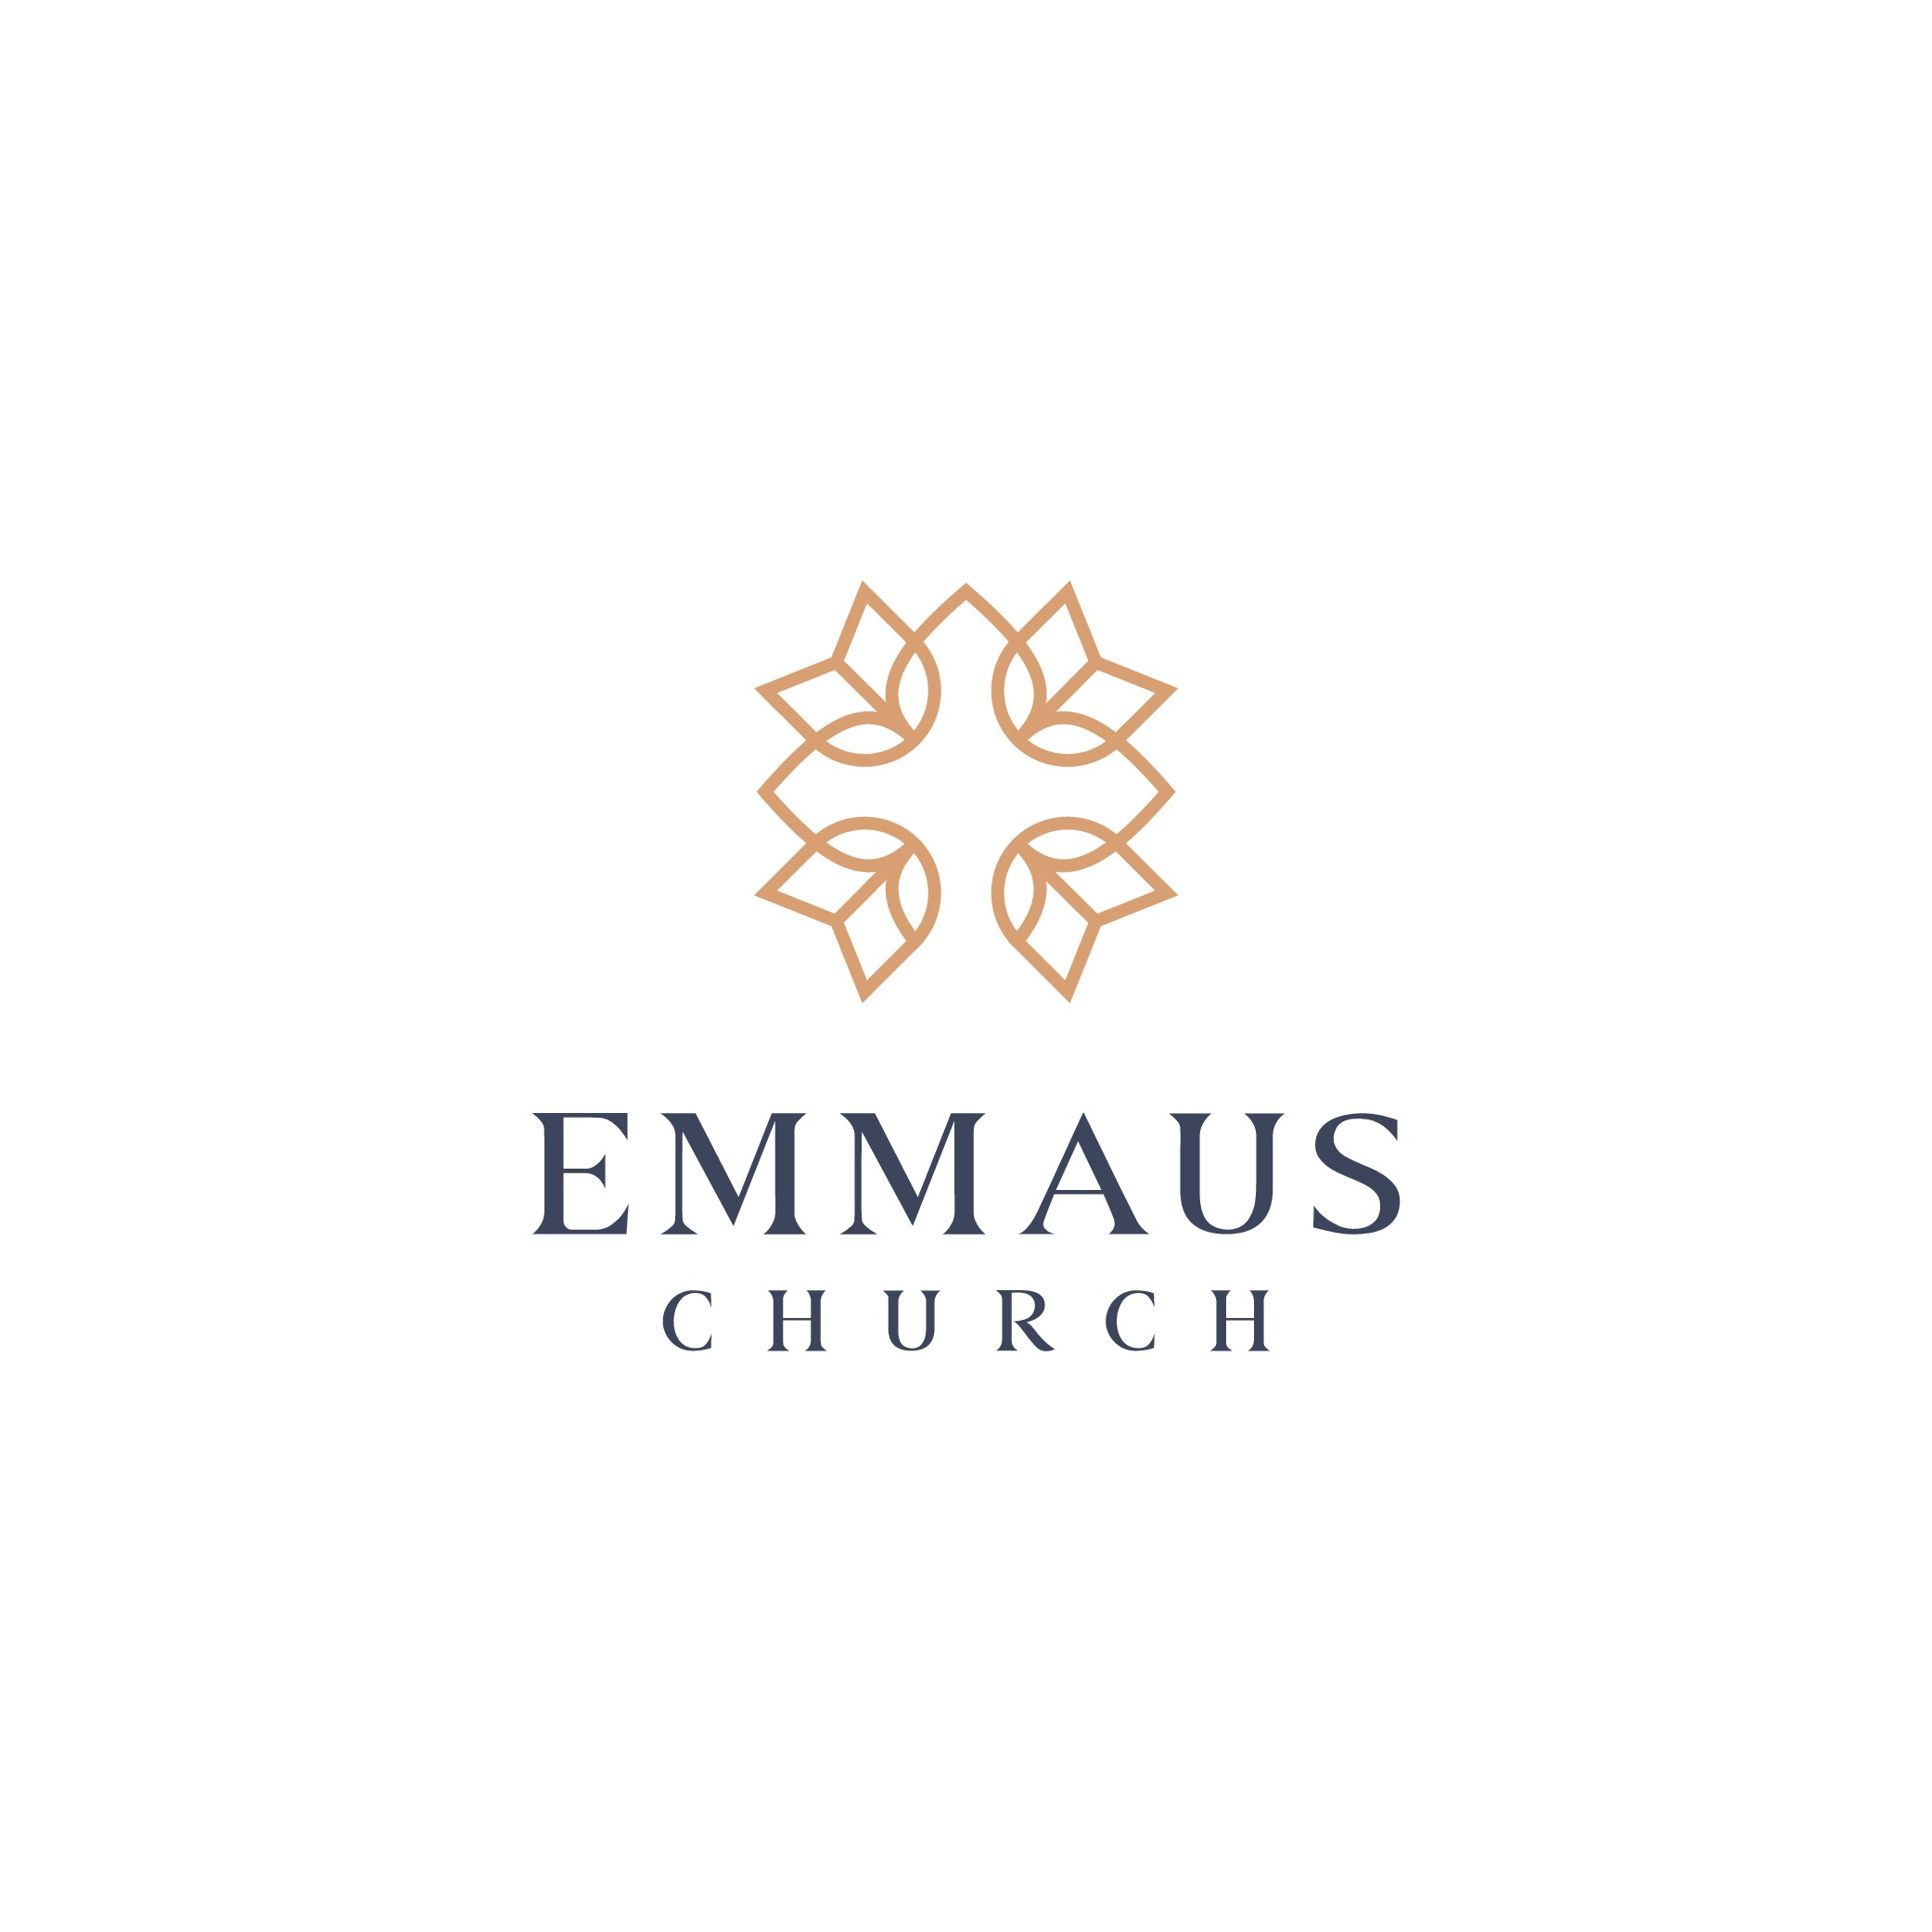 We need a church logo that is simple, timeless.